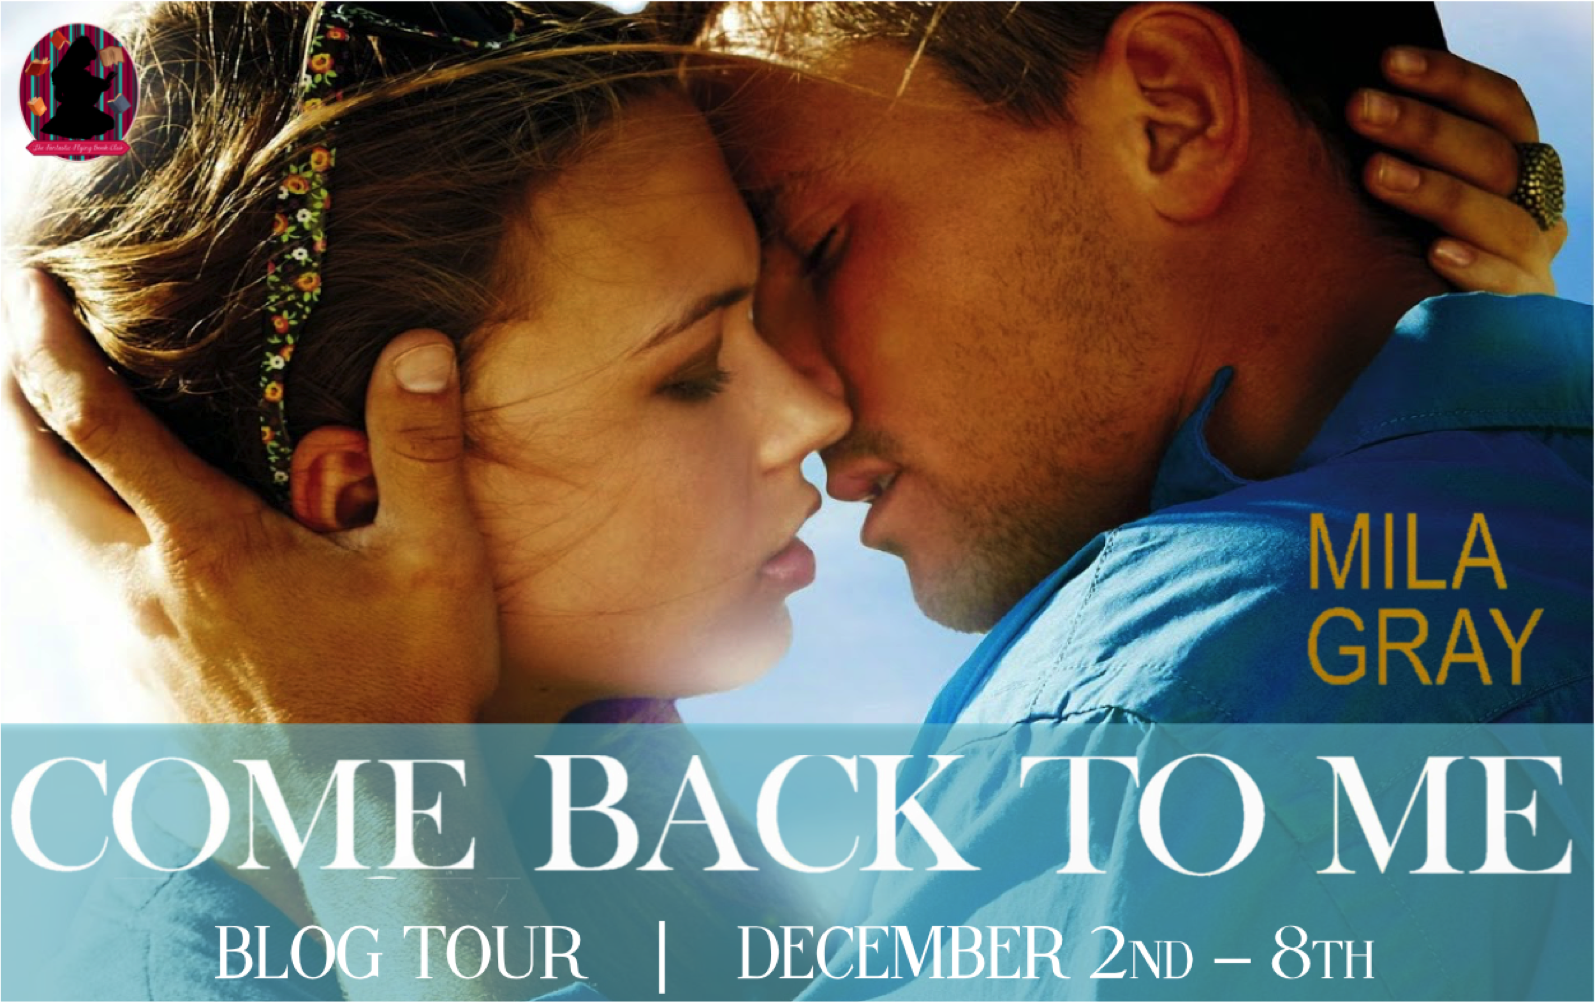 BOOK REVIEW + EXCERPT + GIVEAWAY - Come Back to Me (Come Back to Me #1) by Mila Gray